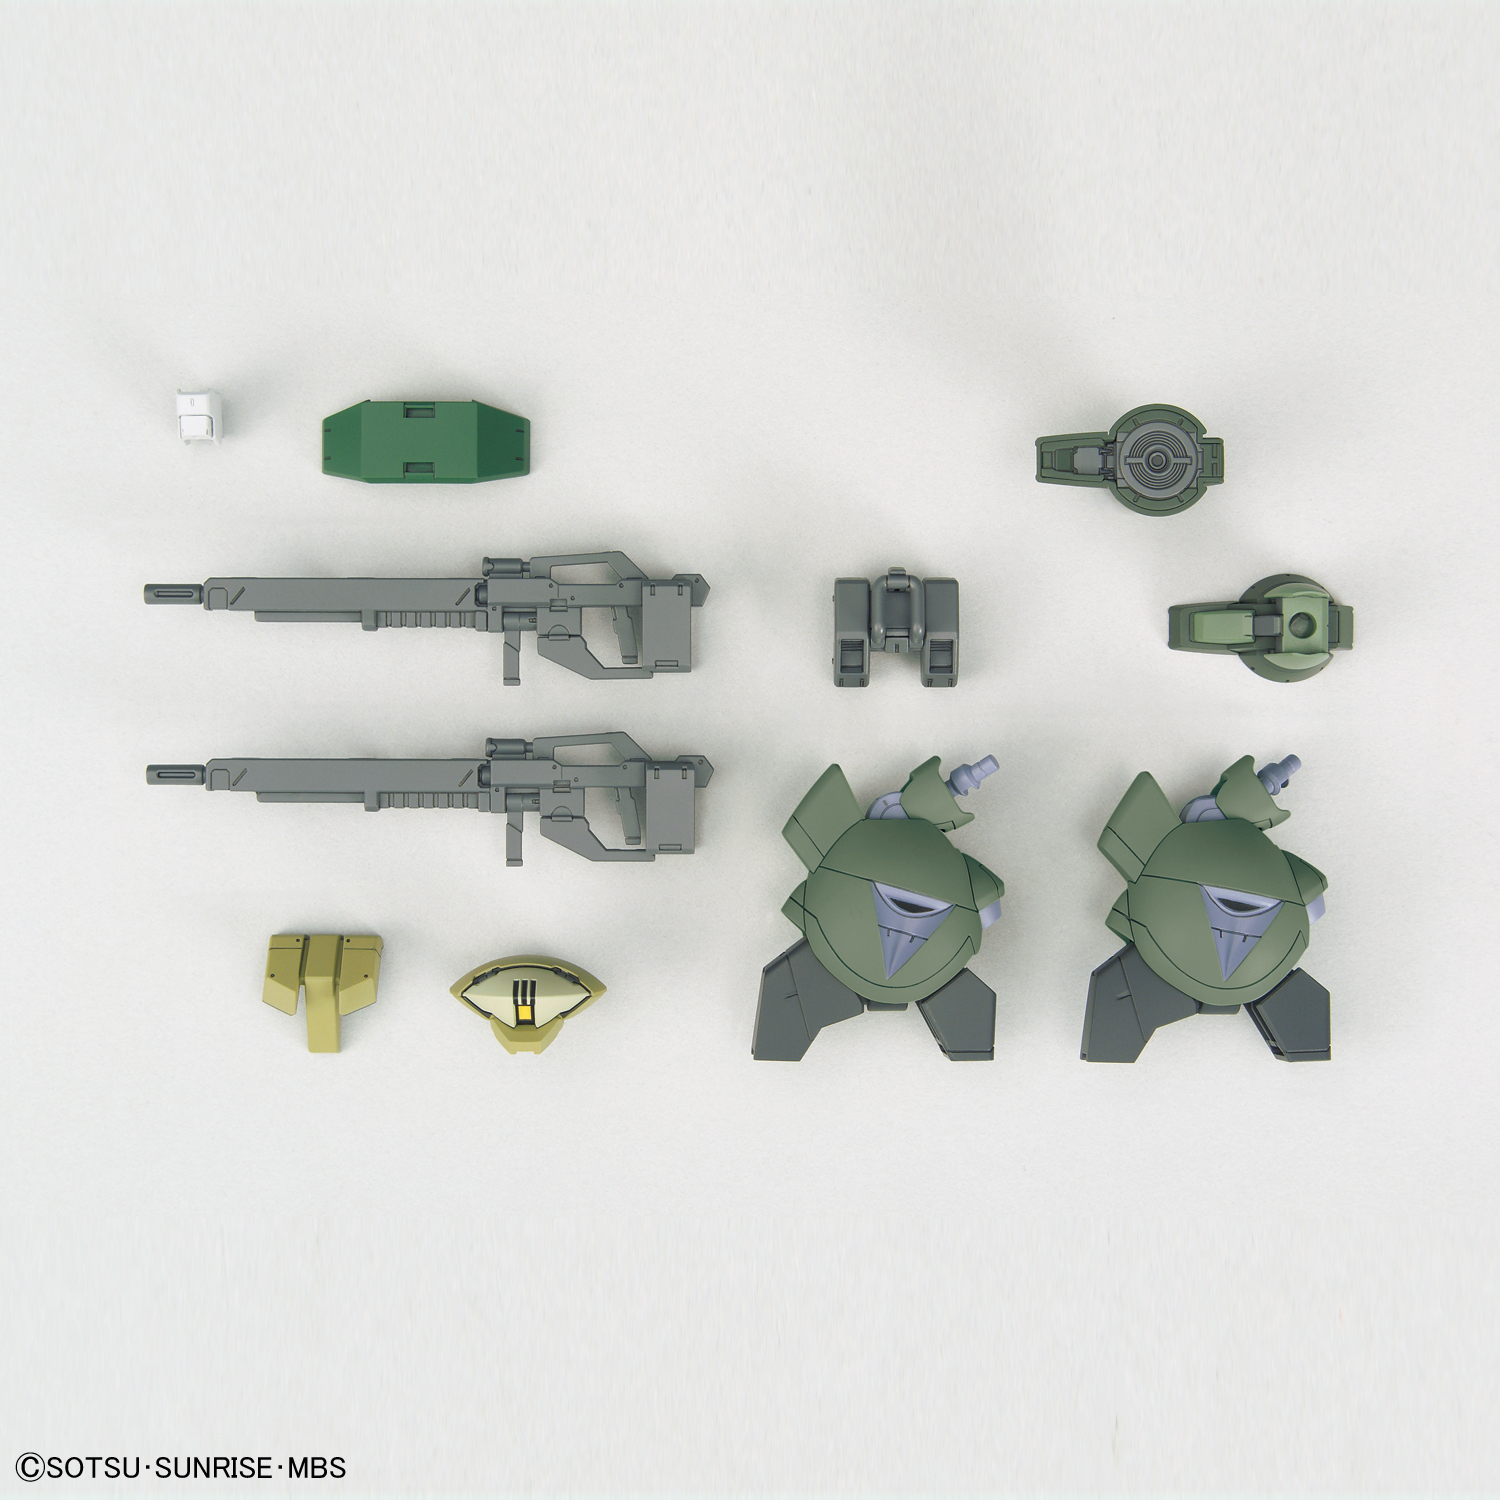 39869HG 1/144 MSオプションセット9 [Mobile Suit Option Set 9] 5055898 0214480 4573102558985 4549660144809